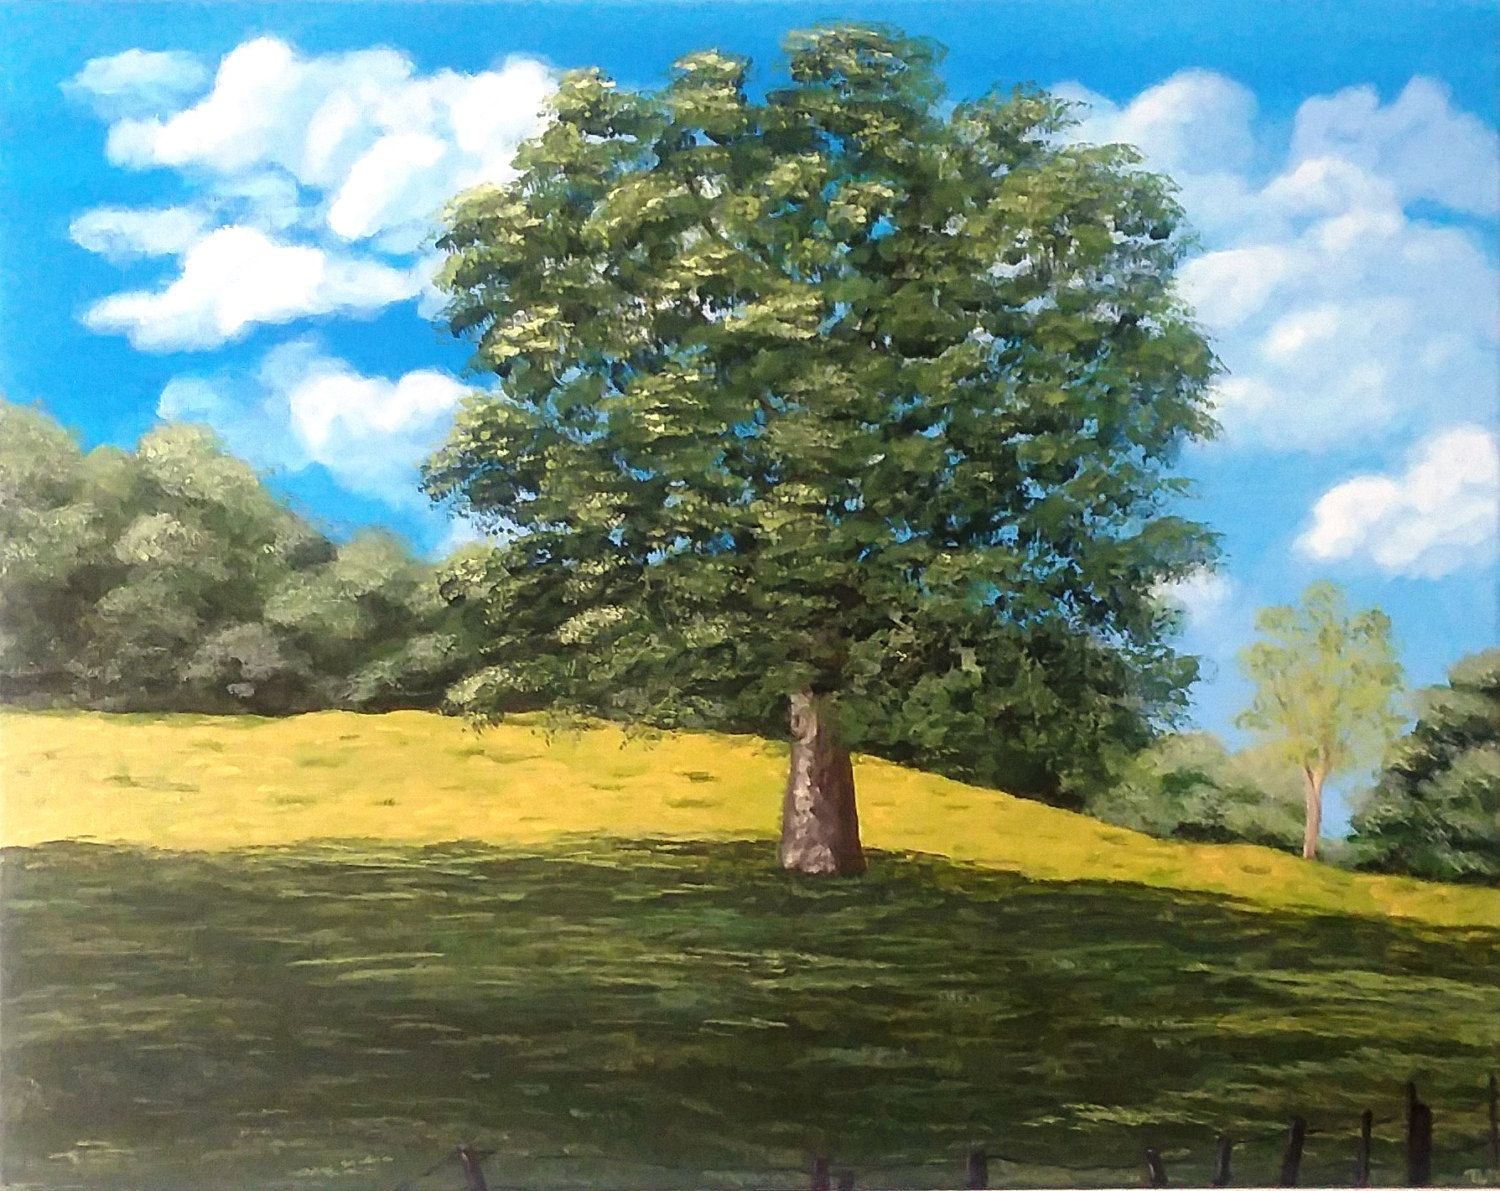 Tree In Field With Fence Wall Painting Field Painting Tree Picture Tree In Field Picture Tree Painting La Tree Painting Landscape Paintings Wall Painting